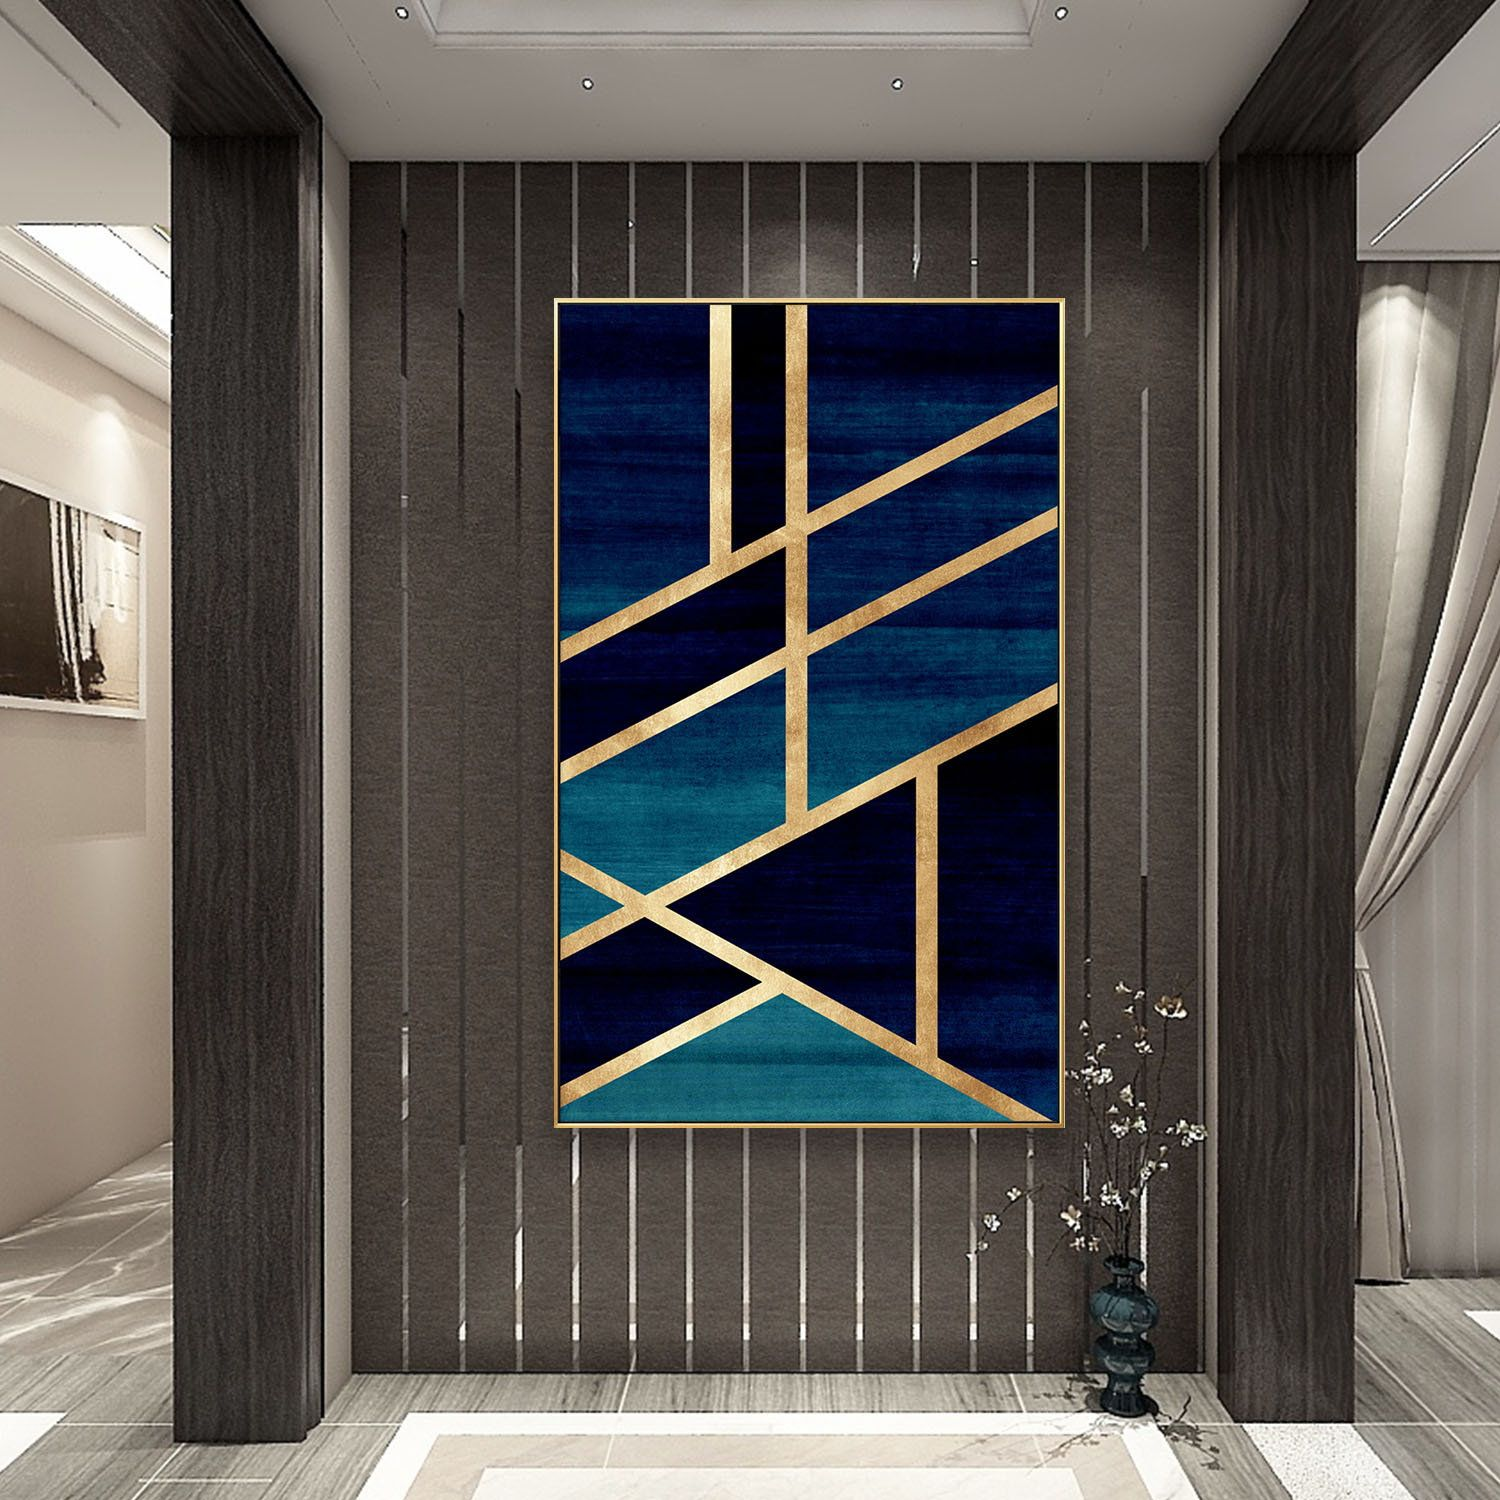 Modern Geometric Gold Navy Blue Simple Nordic Abstract Design On Canvas Print Painting Framed Wall Art Decoration Diy Canvas Art Wall Canvas Painters Tape Art